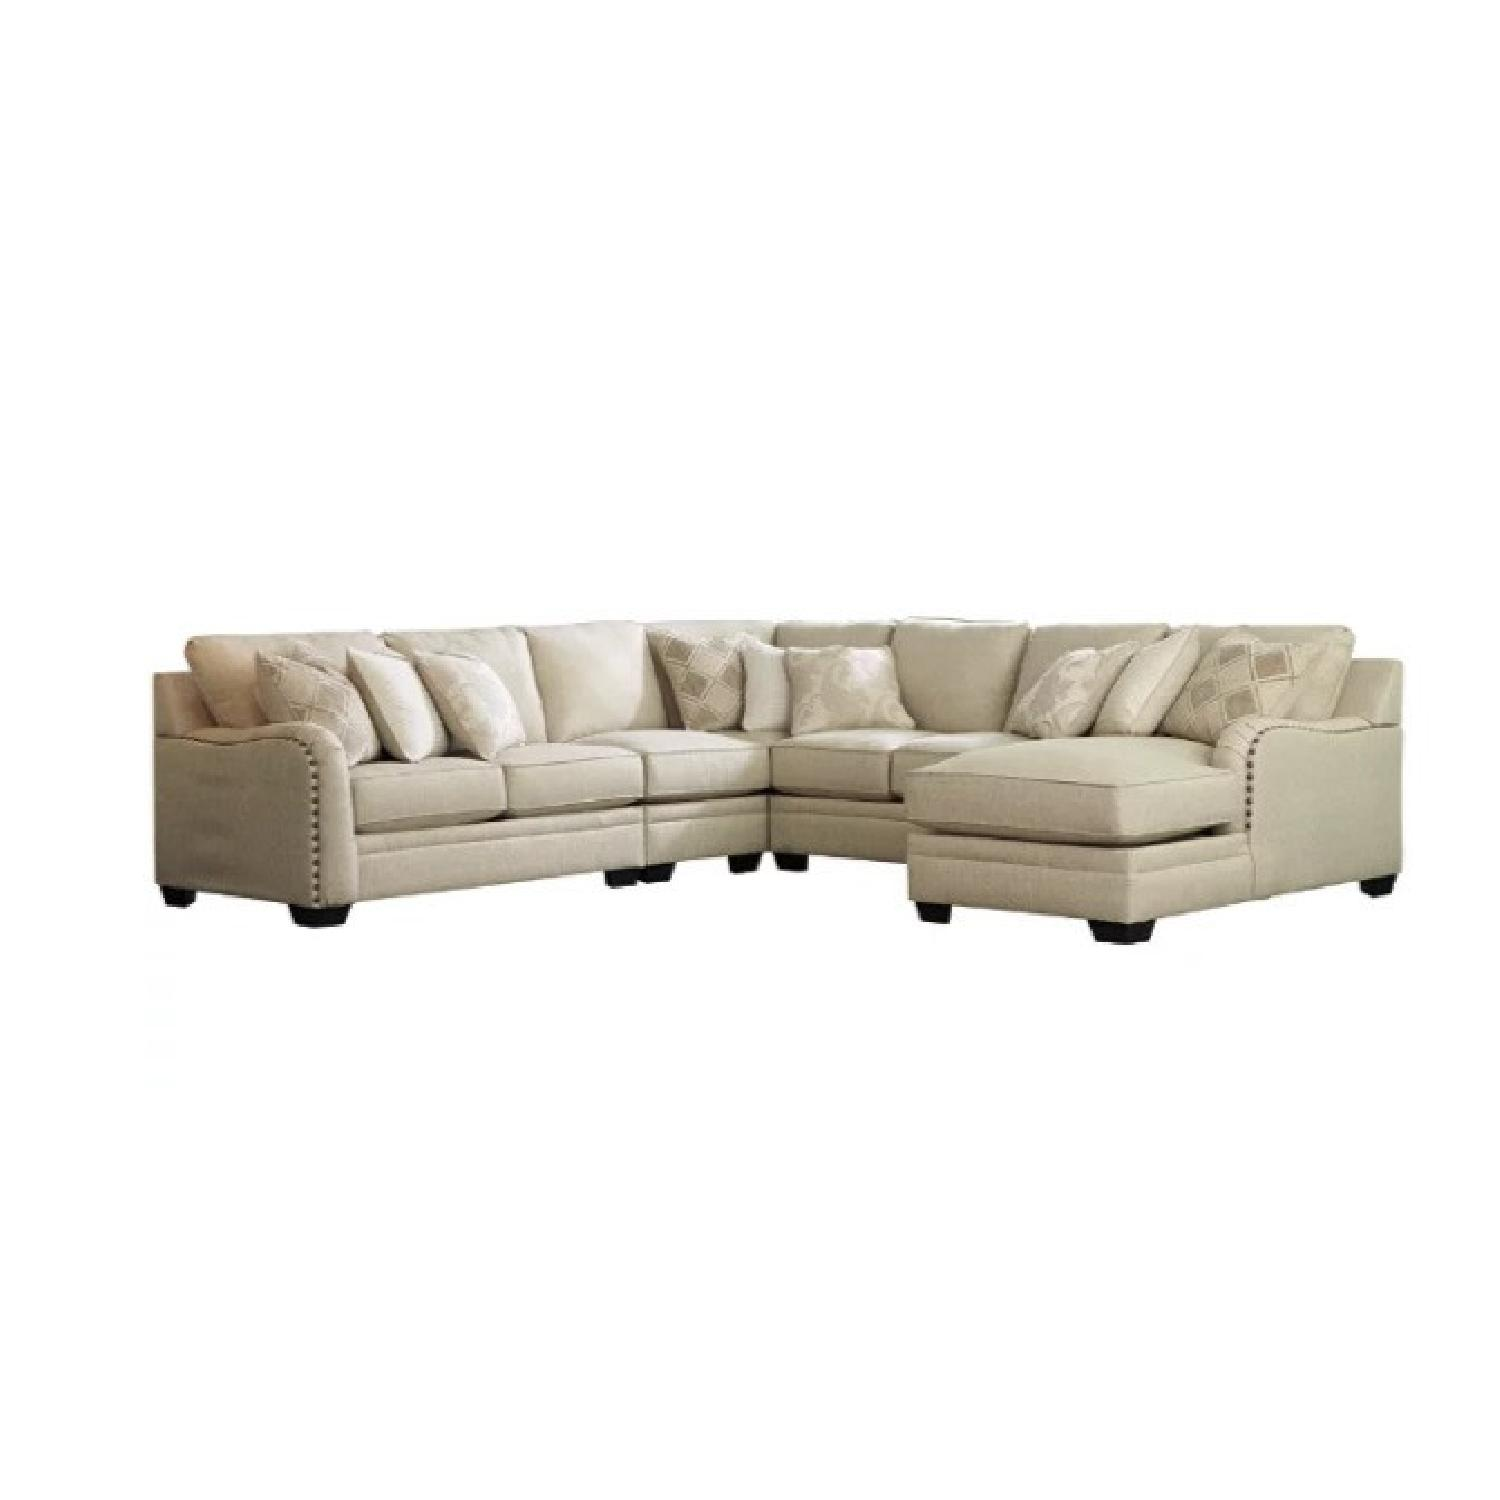 Ashley Furniture 5-pc Sectional with Chaise - image-9